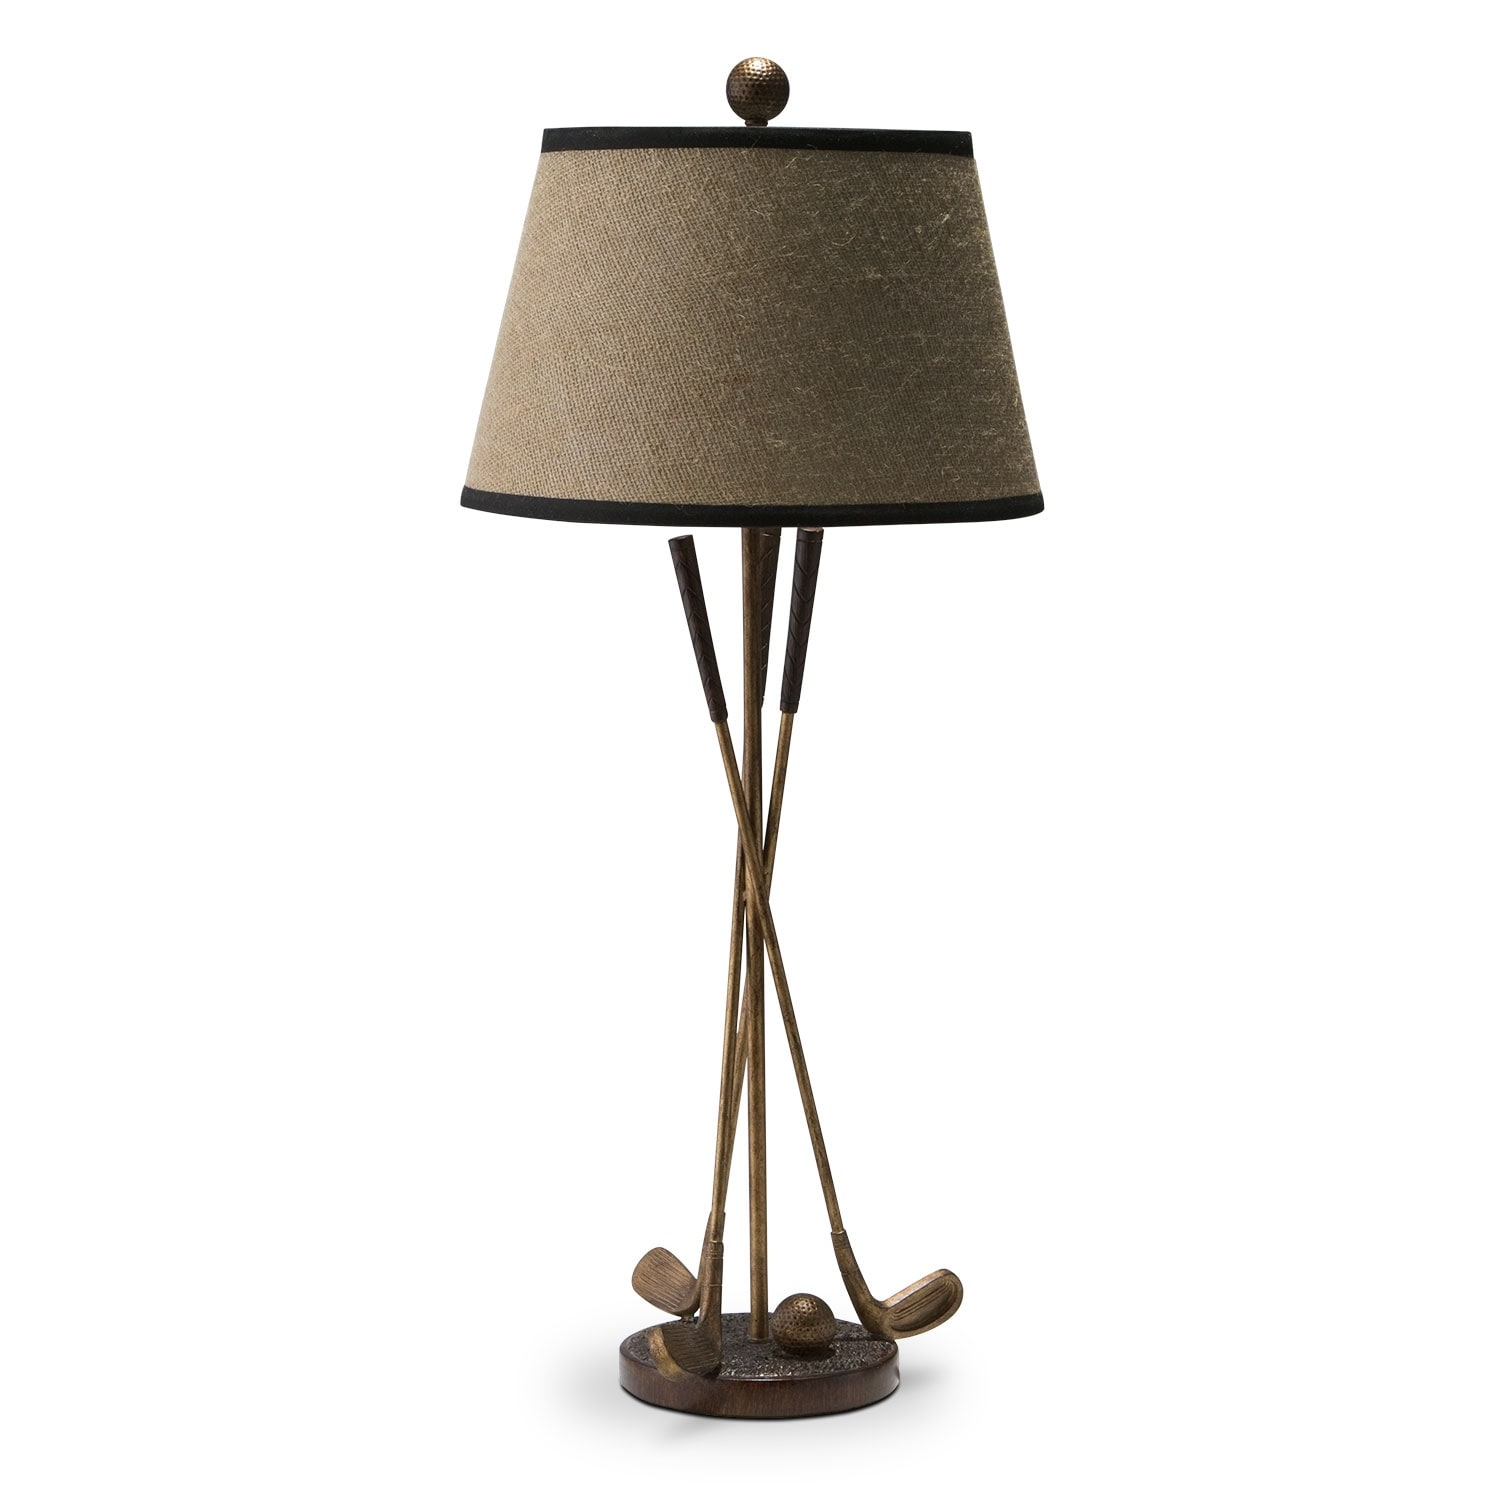 Home Accessories - Golf Club Table Lamp